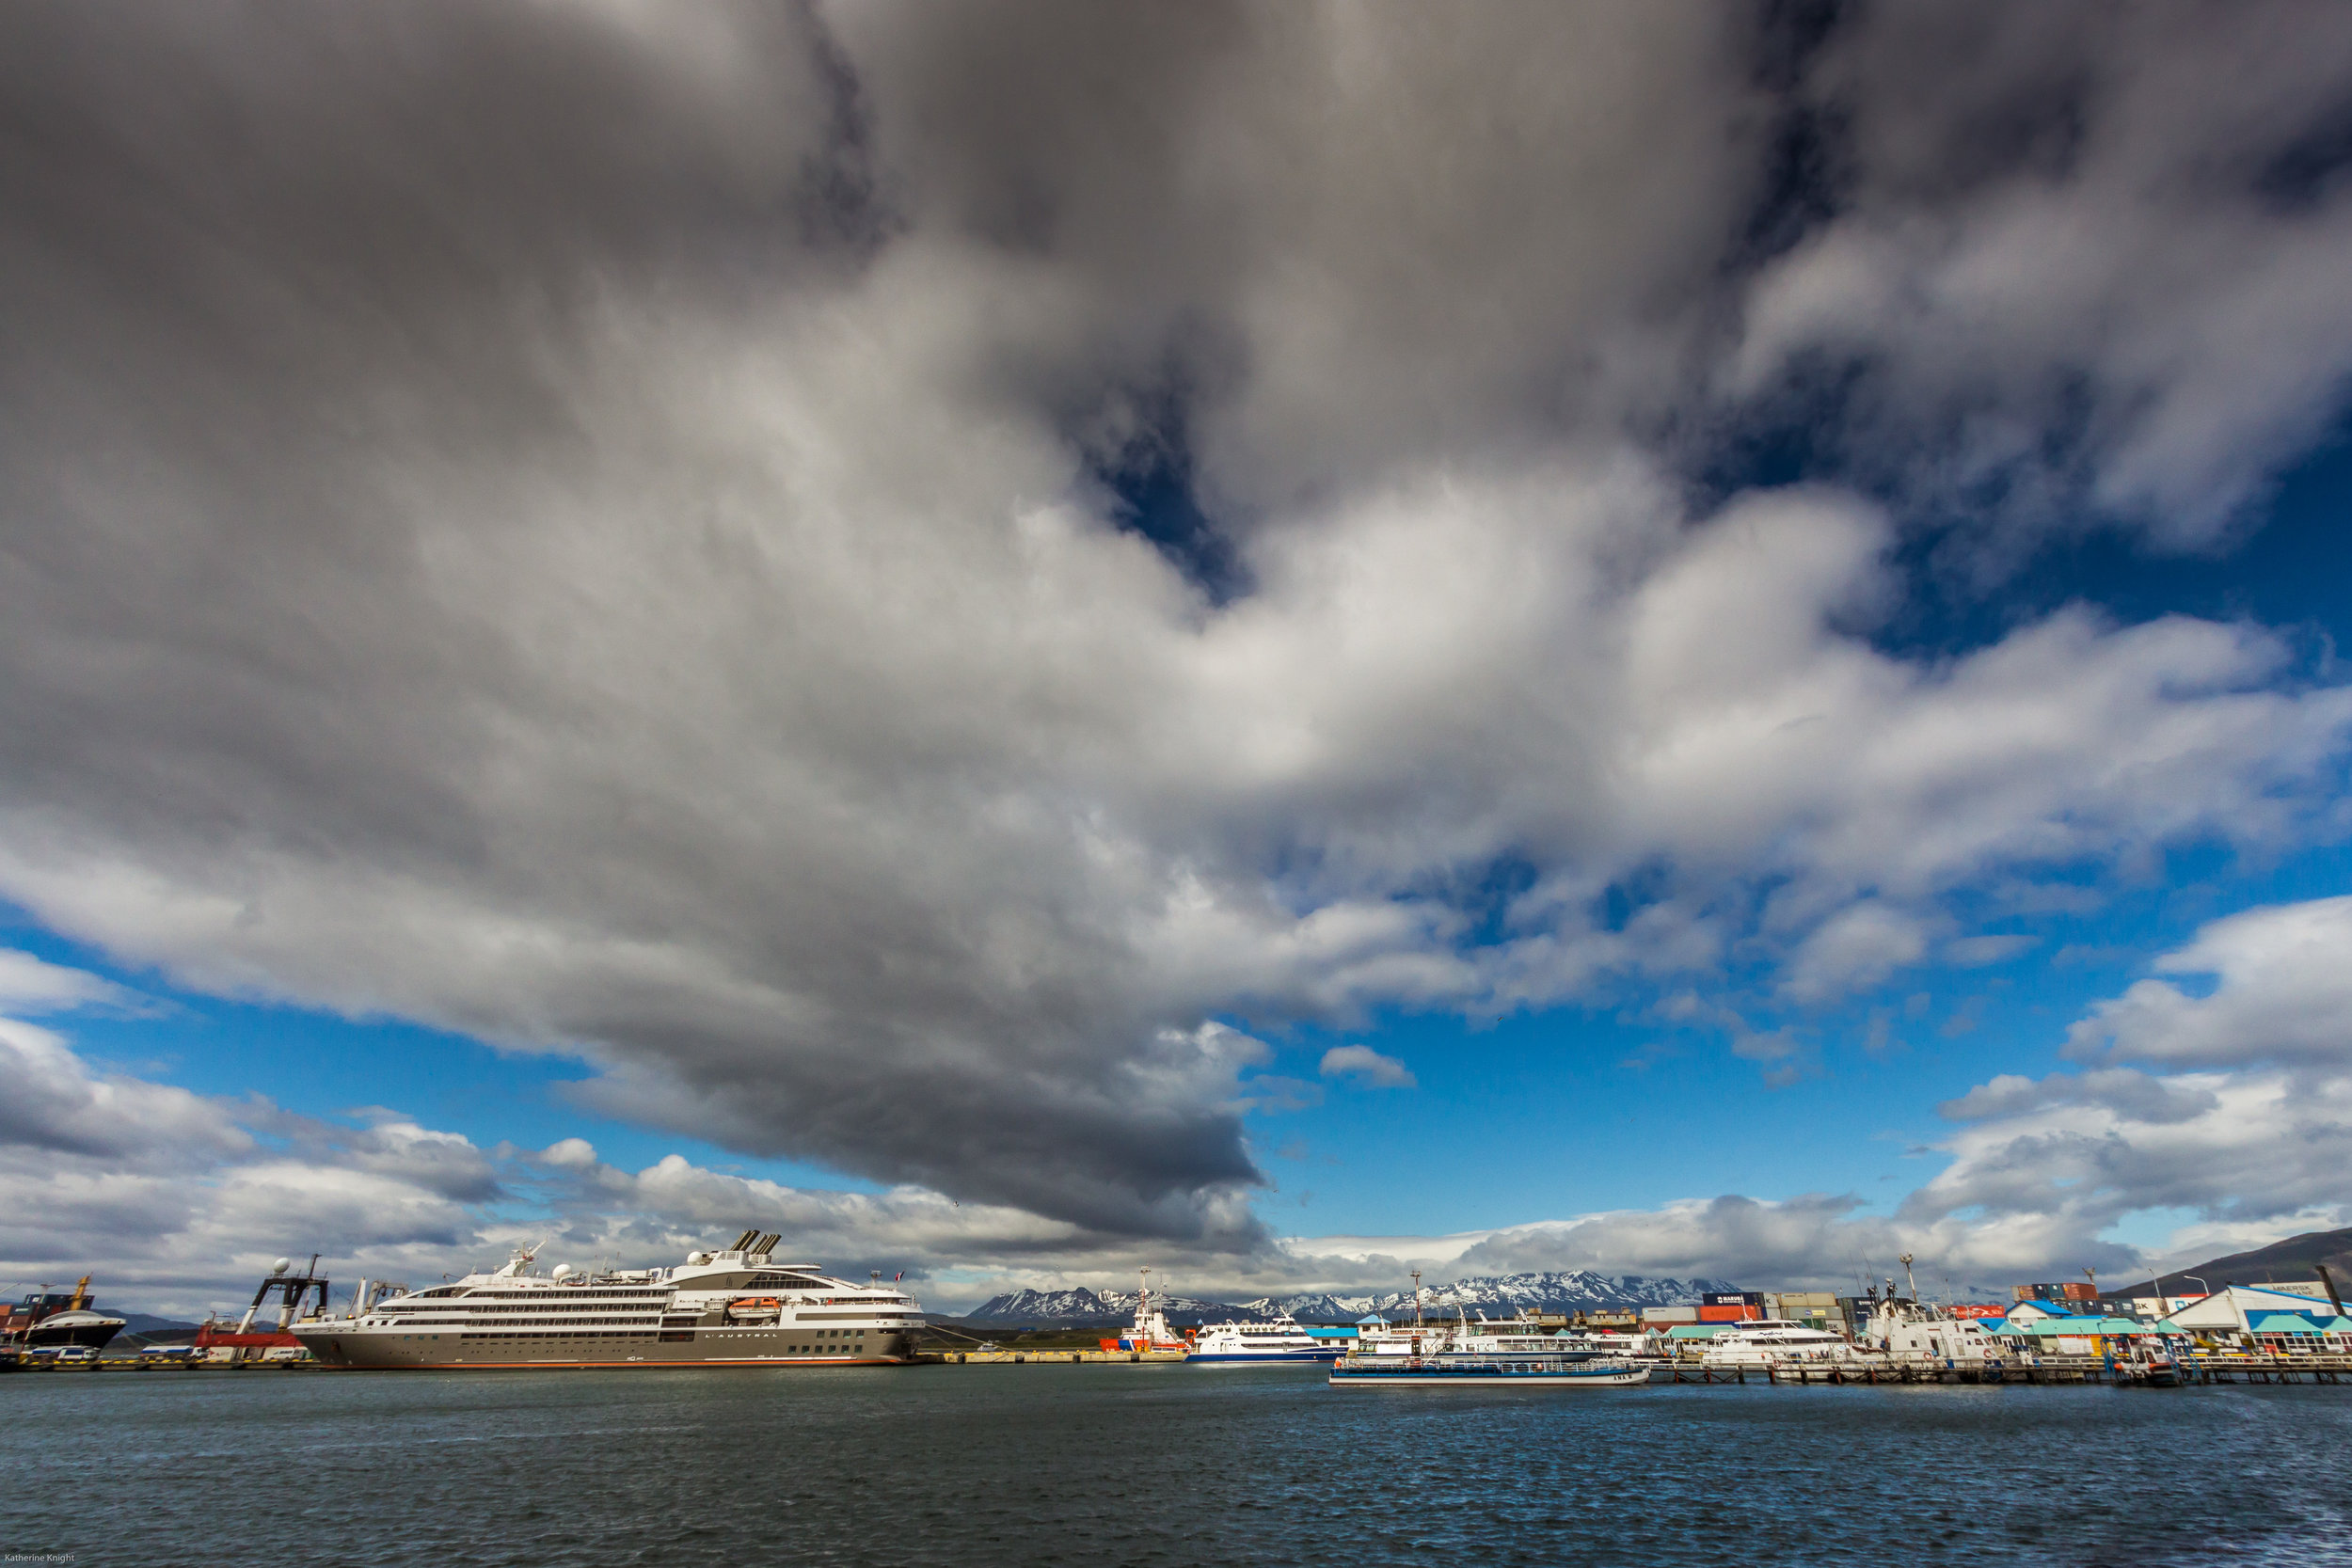 Ushuaia, busiest cruise terminal in the world